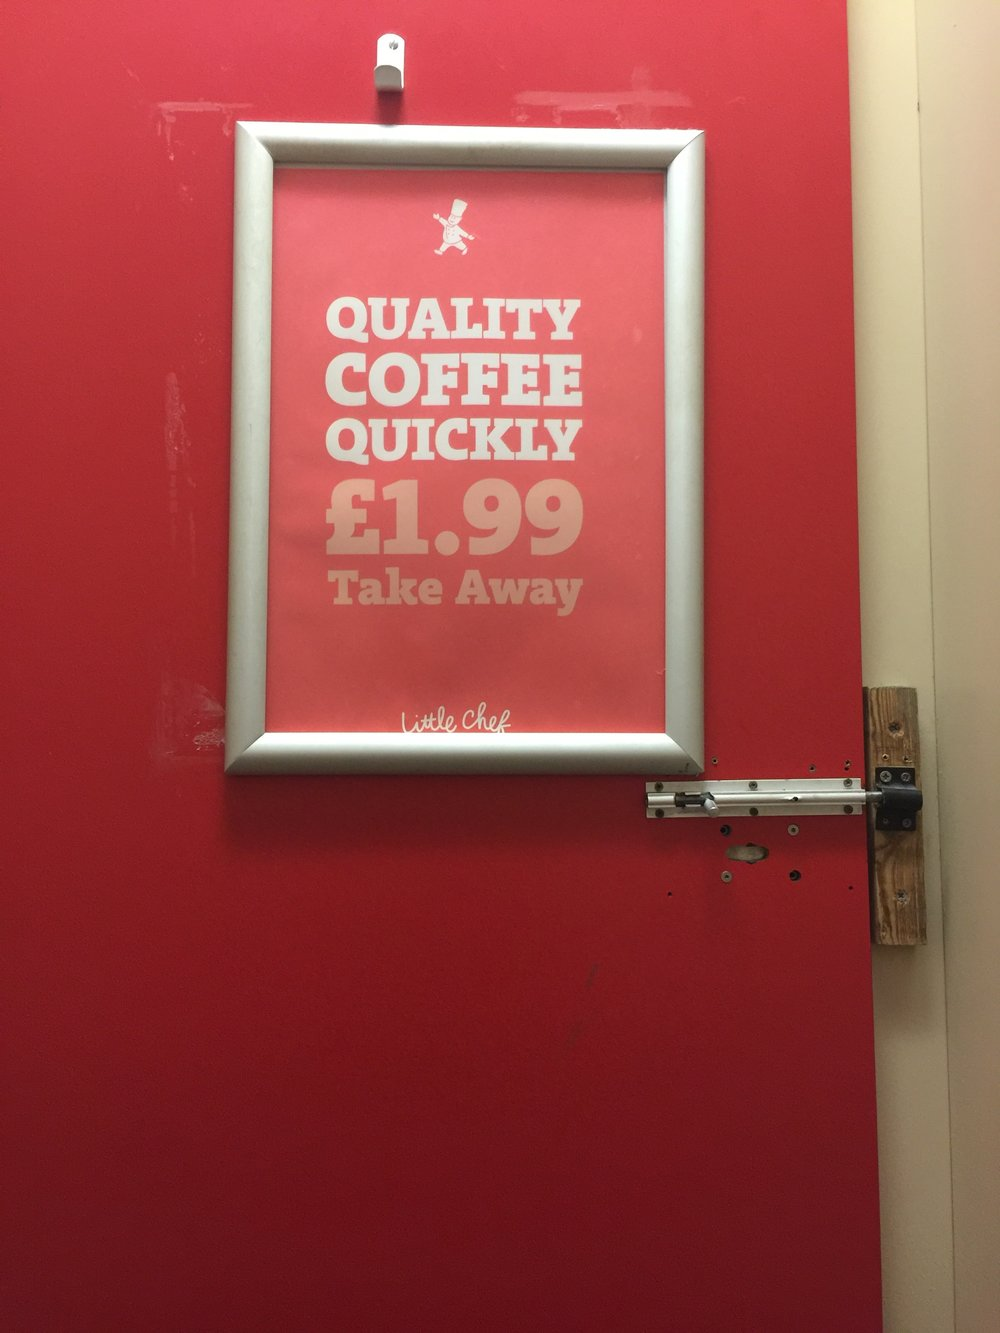 Firstly quality coffee quickly? The only thing I did was exit very quickly, well when they finally charged me for my breakfast and not the other tables 😳need I describe the picture? I think it speaks for itself.